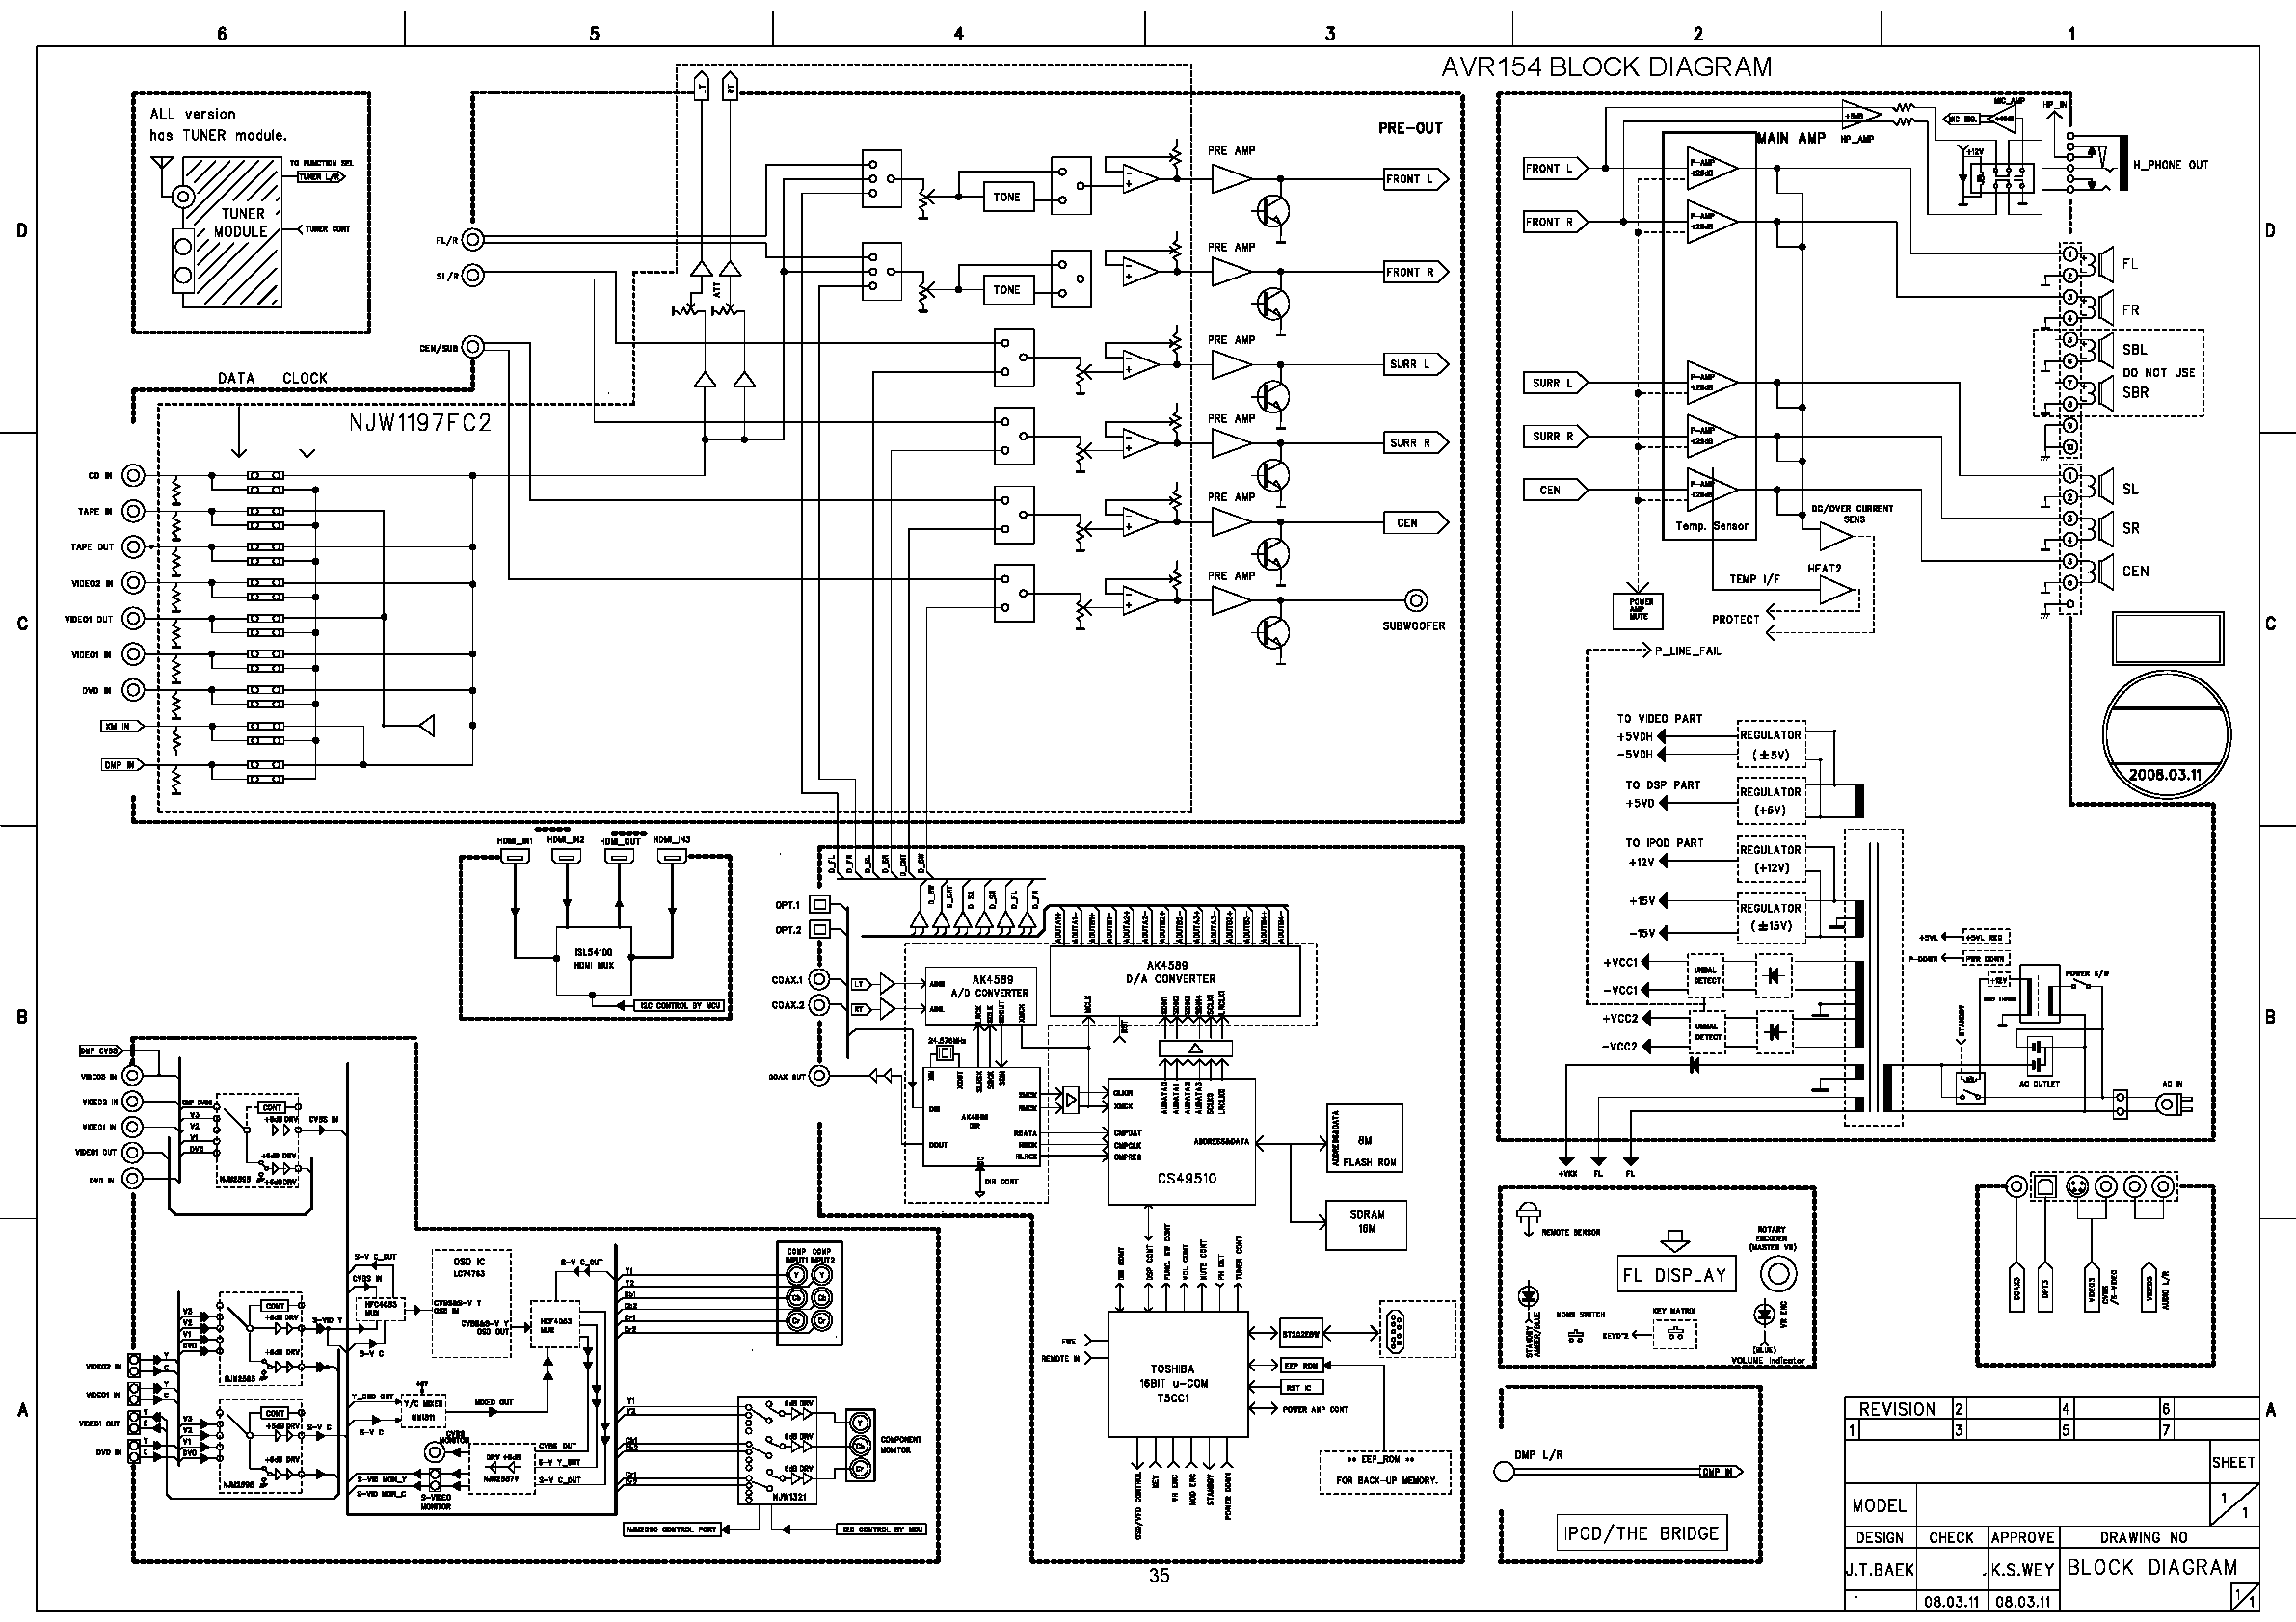 chevy lumina wiring diagram with Saturn Radio Wiring Diagram on Chevrolet Camaro 5 0 1997 Specs And Images likewise Electrical Wiring Diagram Dodge Monaco furthermore Subaru Egr Wiring Diagram additionally Toyota Previa 1995 Pin Fuse Boxblock Circuit Breaker Diagram likewise 4l80e Torque Converter Solenoid Location.